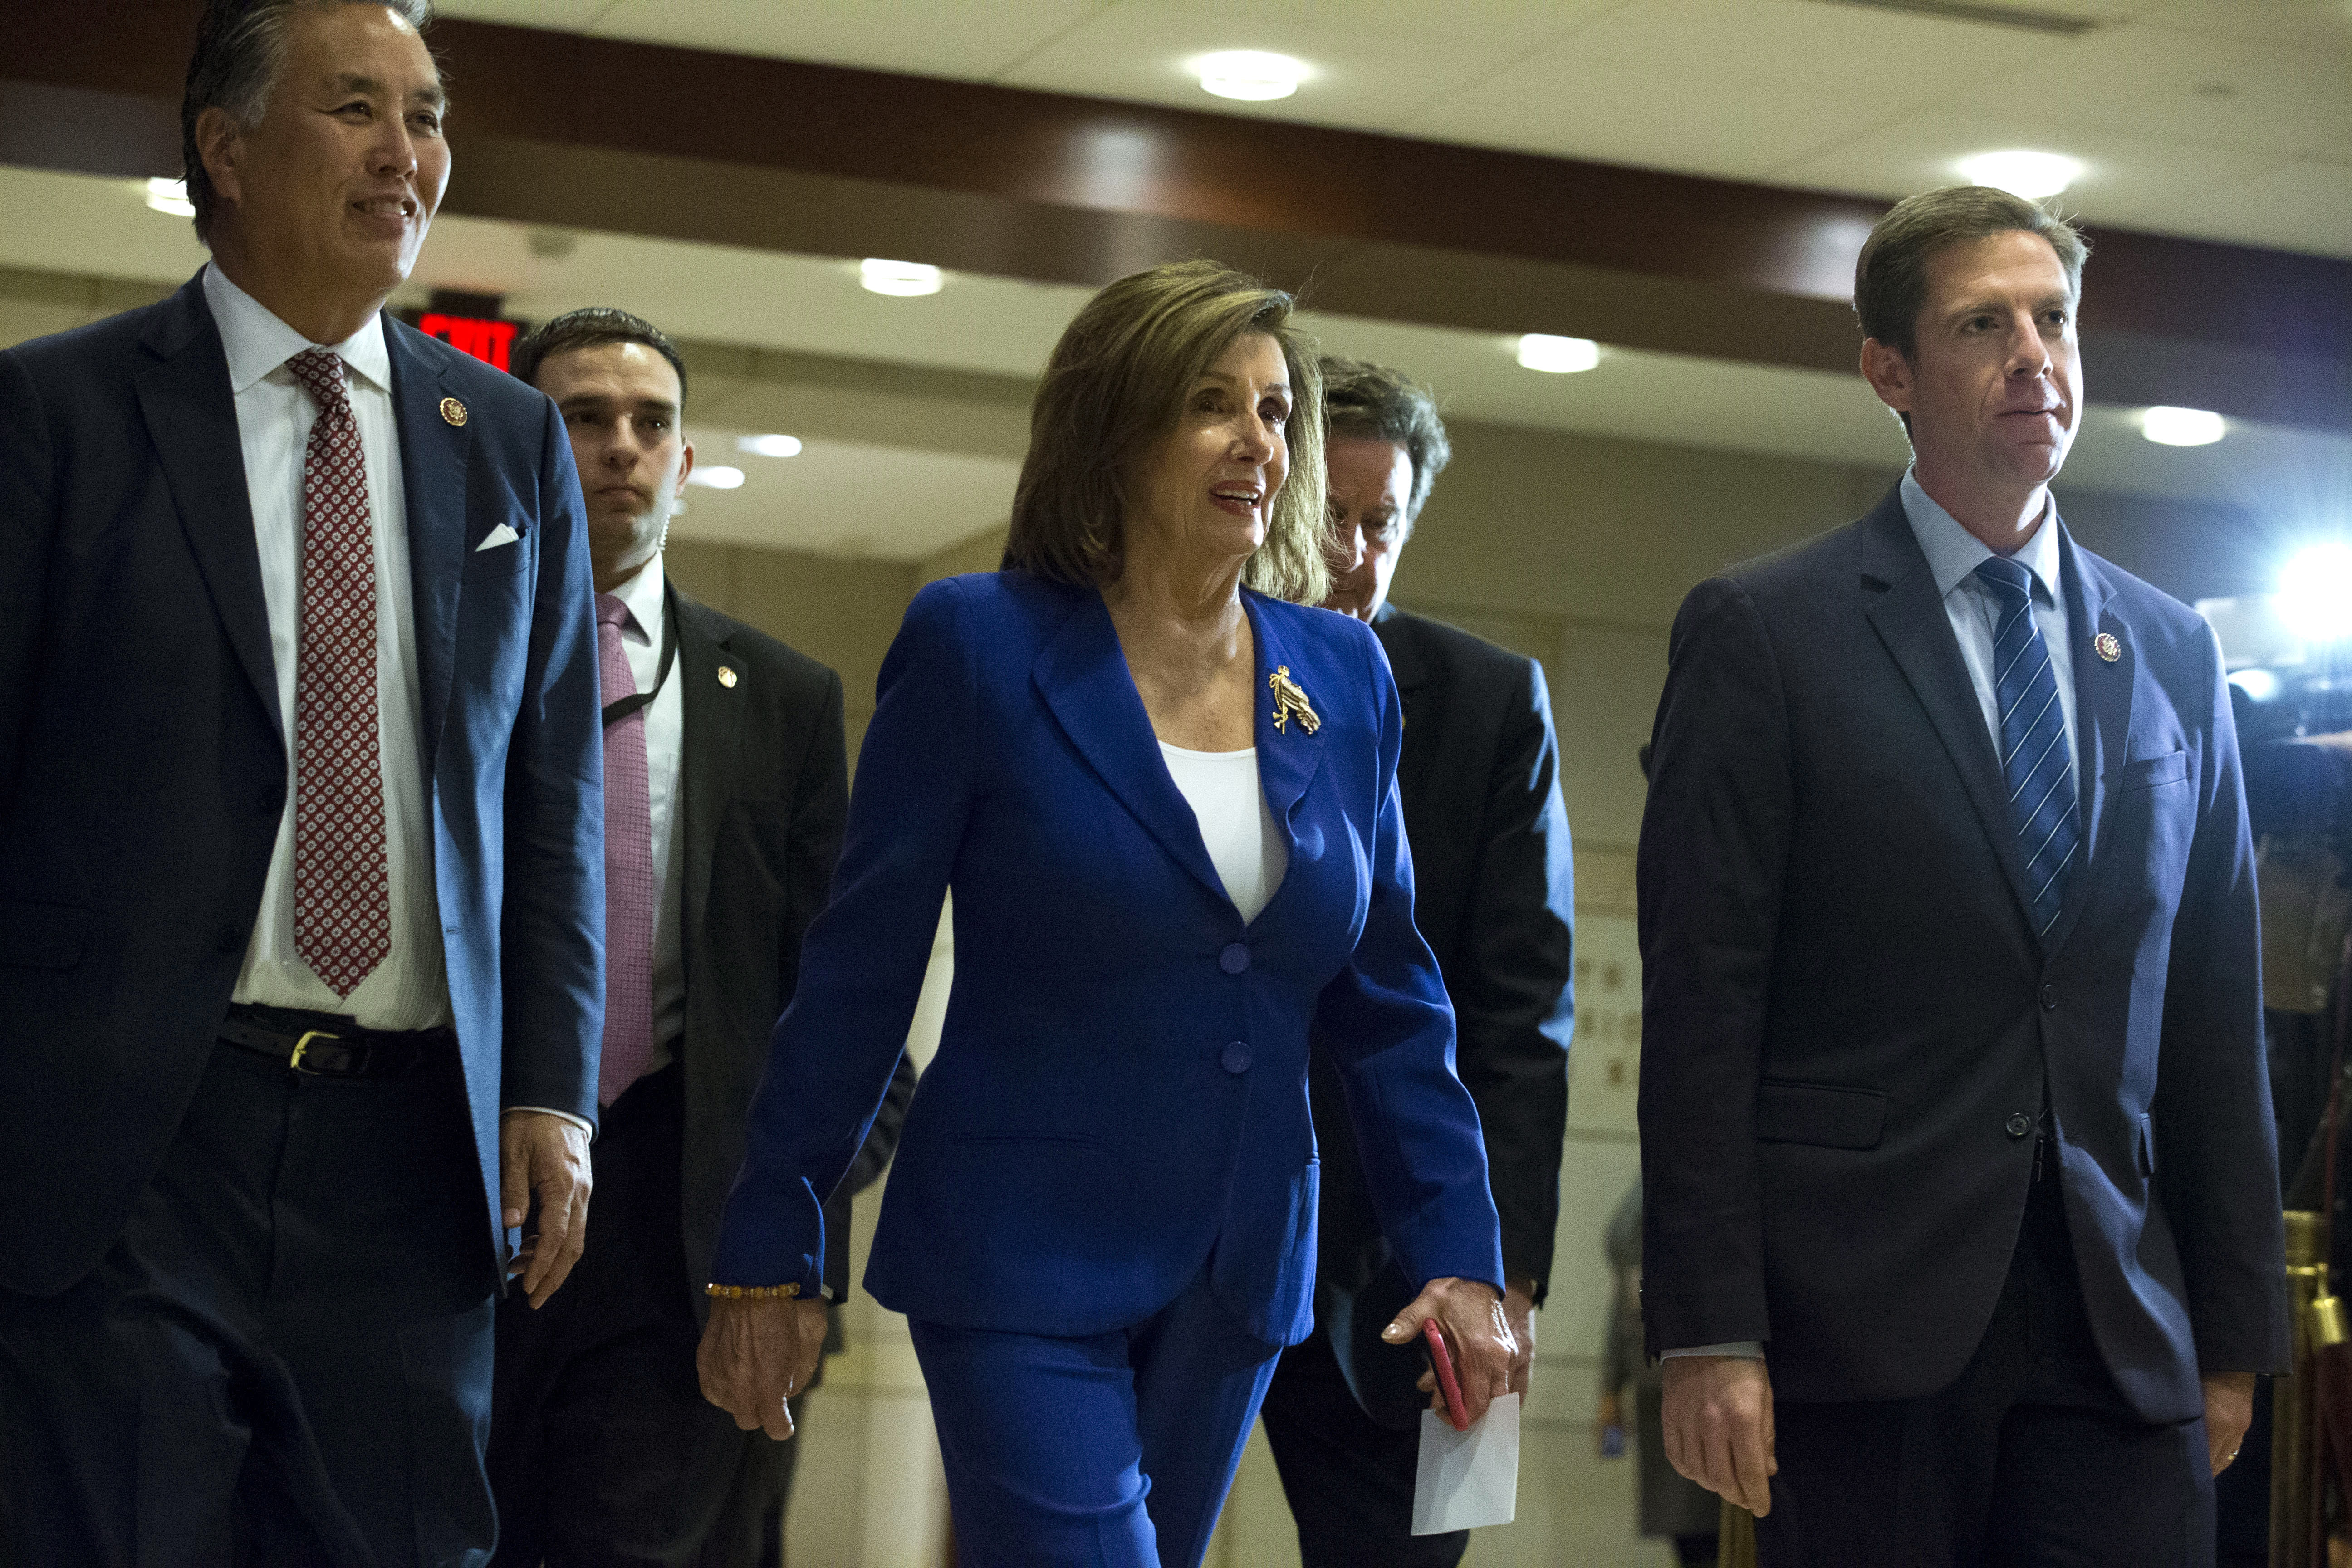 Speaker of the House Nancy Pelosi, D-Calif., accompanied by members of the Congress arrive for a briefing on last week's targeted killing of Iran's senior military commander Gen. Qassem Soleimani on Capitol Hill, in Washington, Wednesday, Jan. 8, 2020. (AP Photo/Jose Luis Magana)